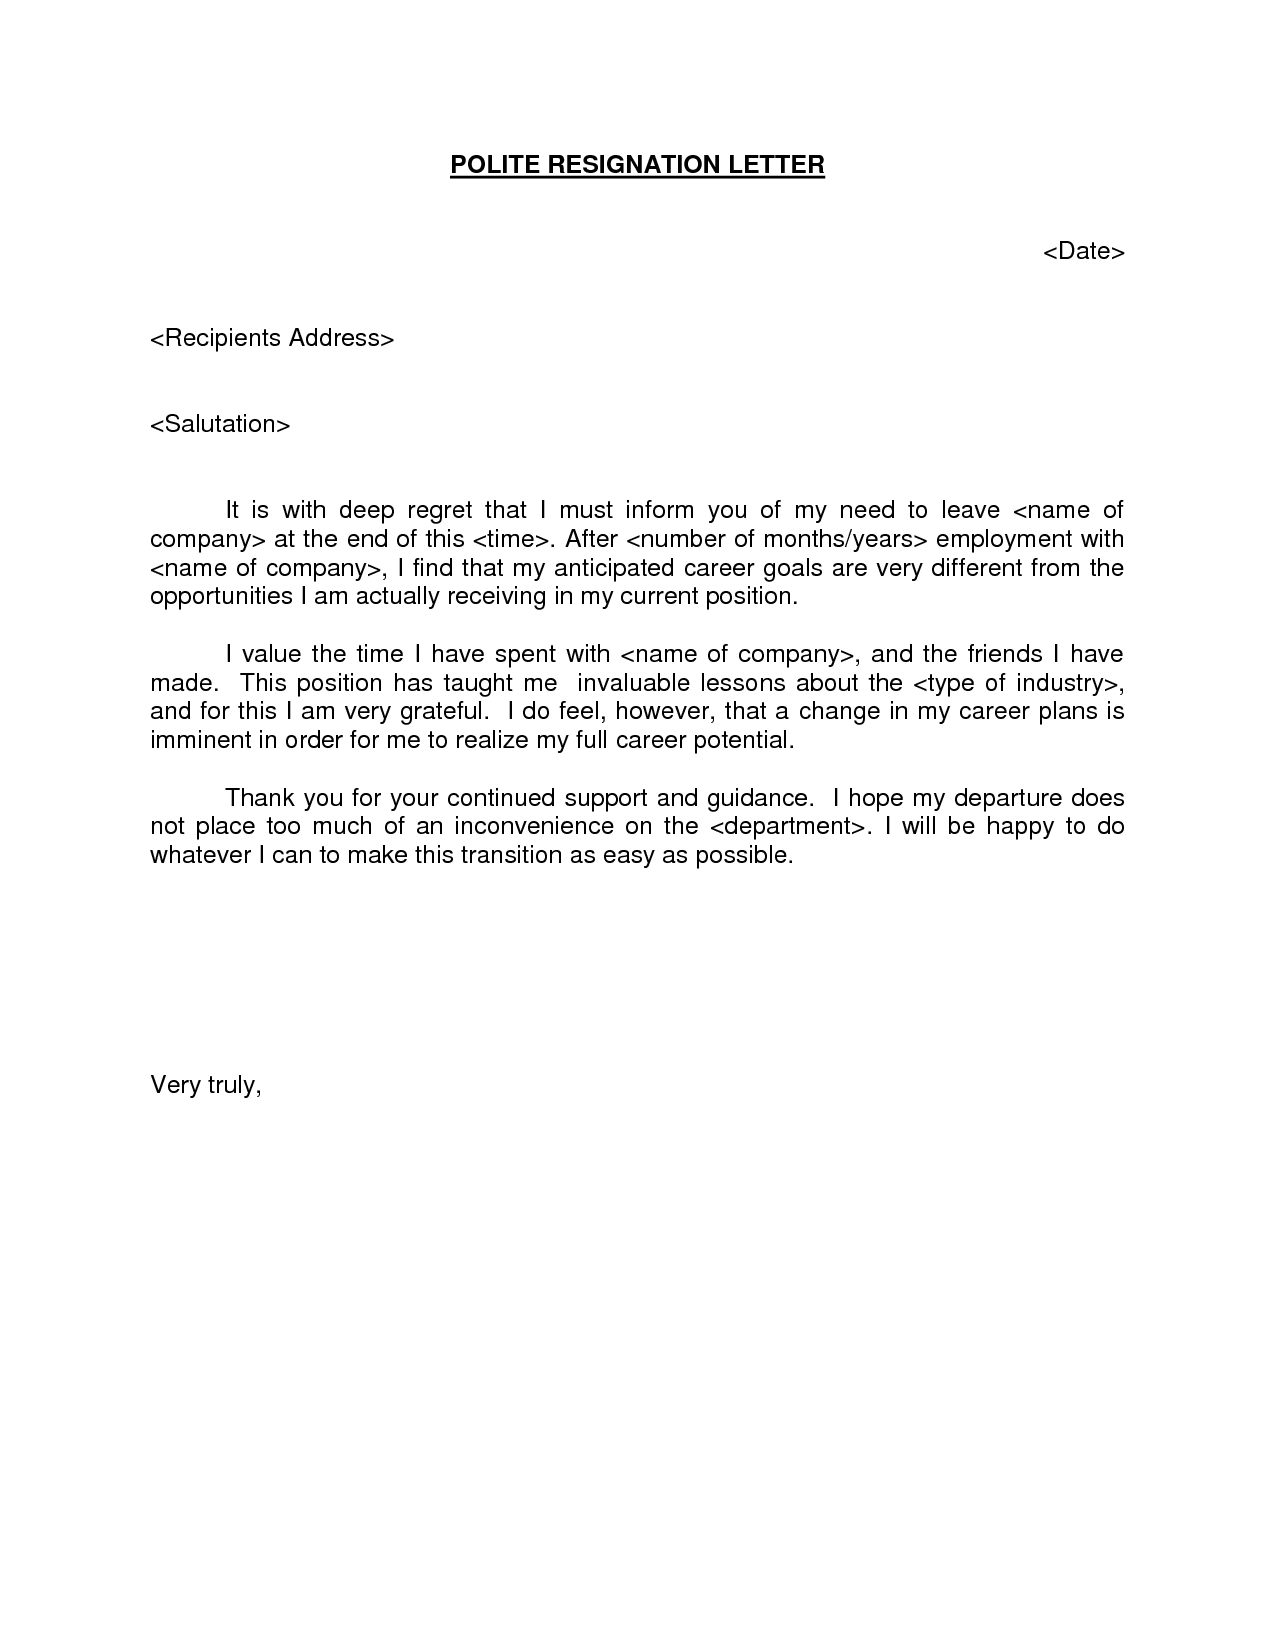 Polite resignation letter bestdealformoneywriting a letter of polite resignation letter bestdealformoneywriting a letter of resignation email letter sample thecheapjerseys Choice Image